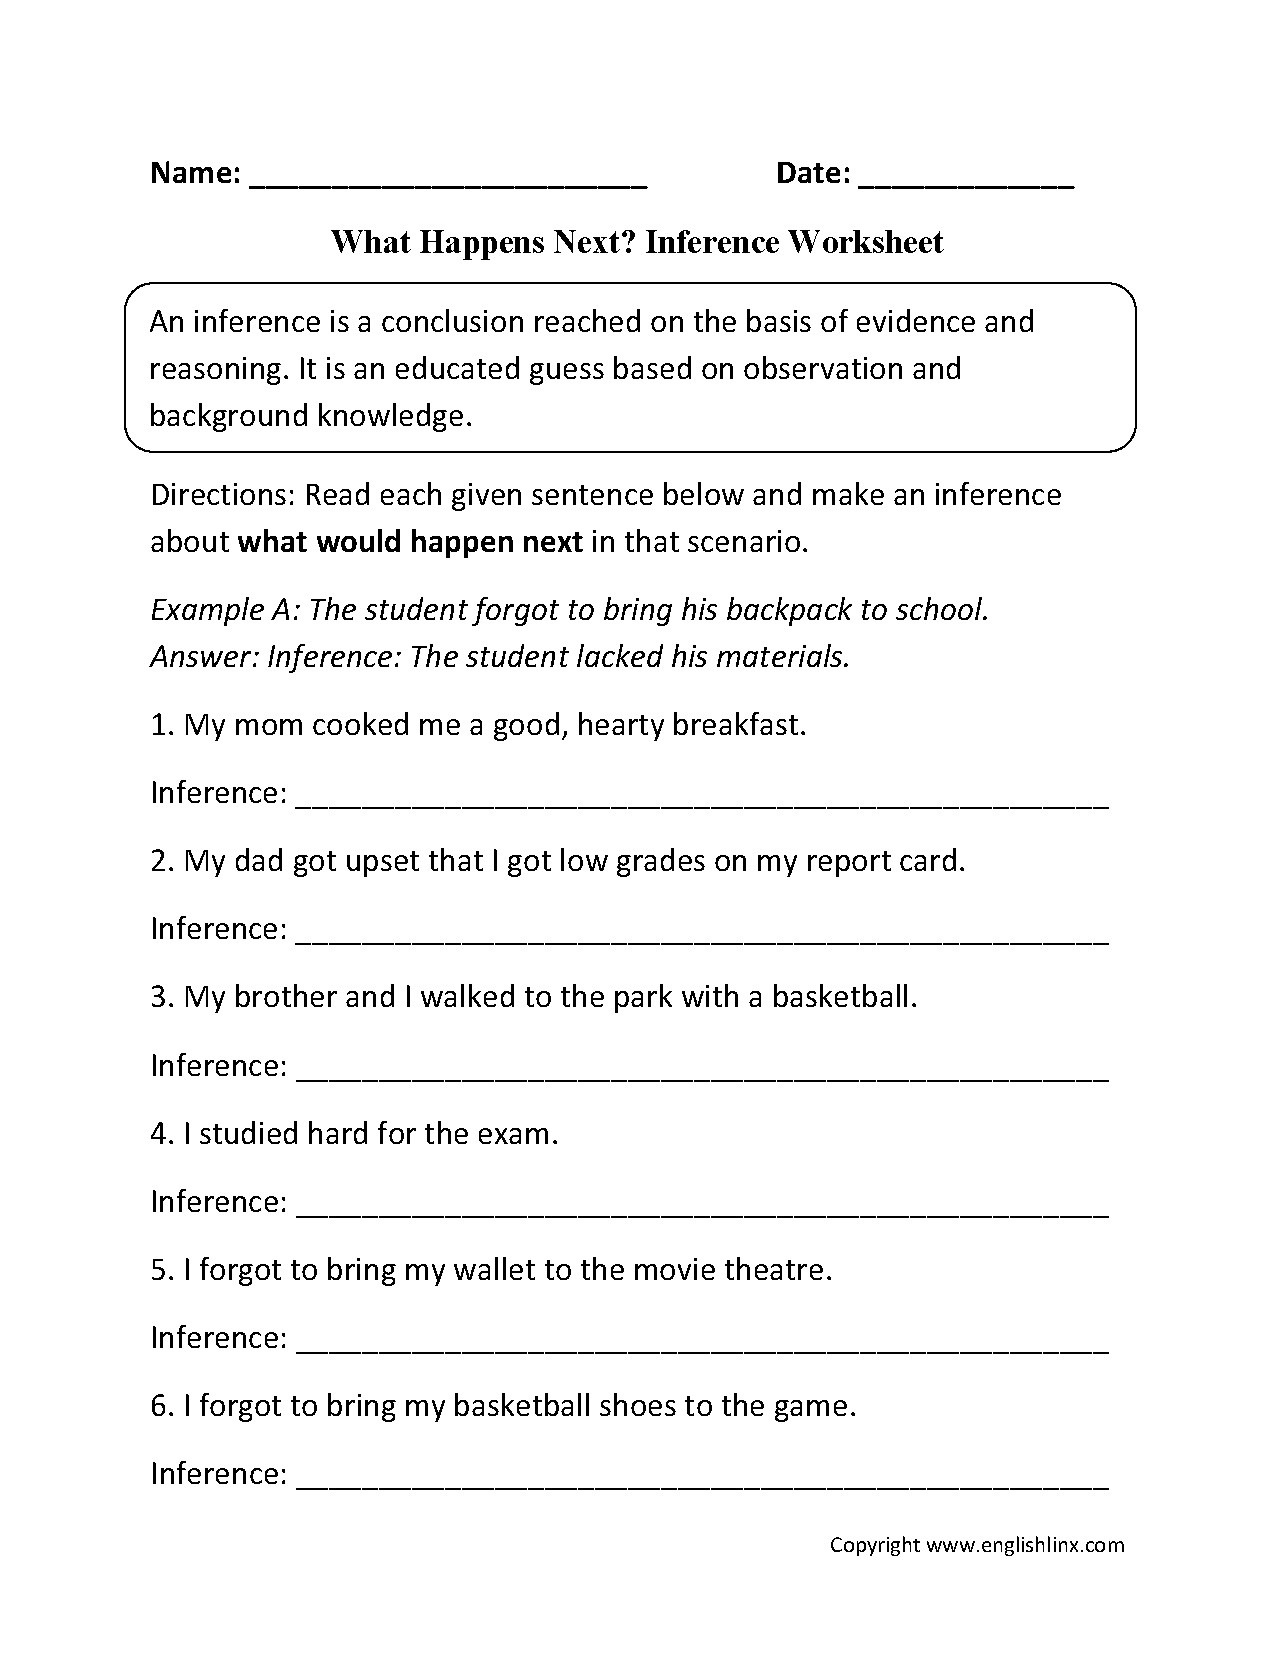 4th Grade Inference Worksheets Making Inferences Worksheets Grade 3